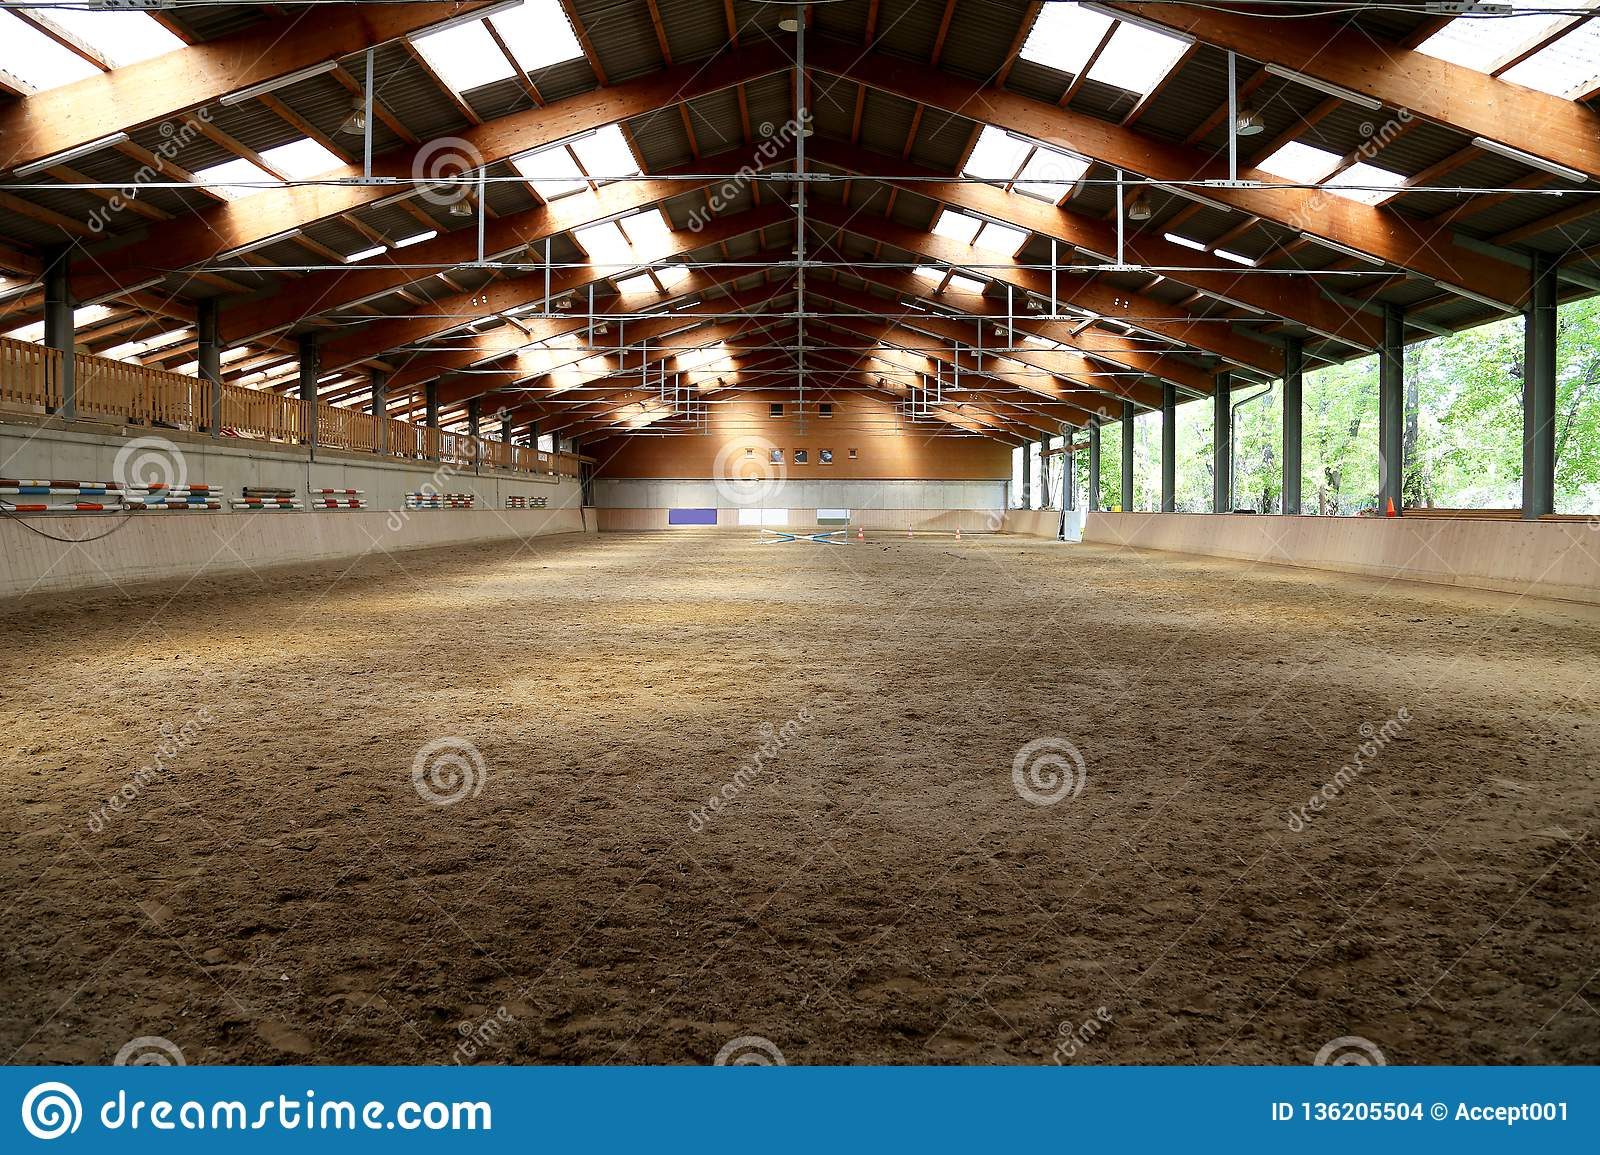 Panoramic View Of An Empty Indoor Horse Riding Arena Stock